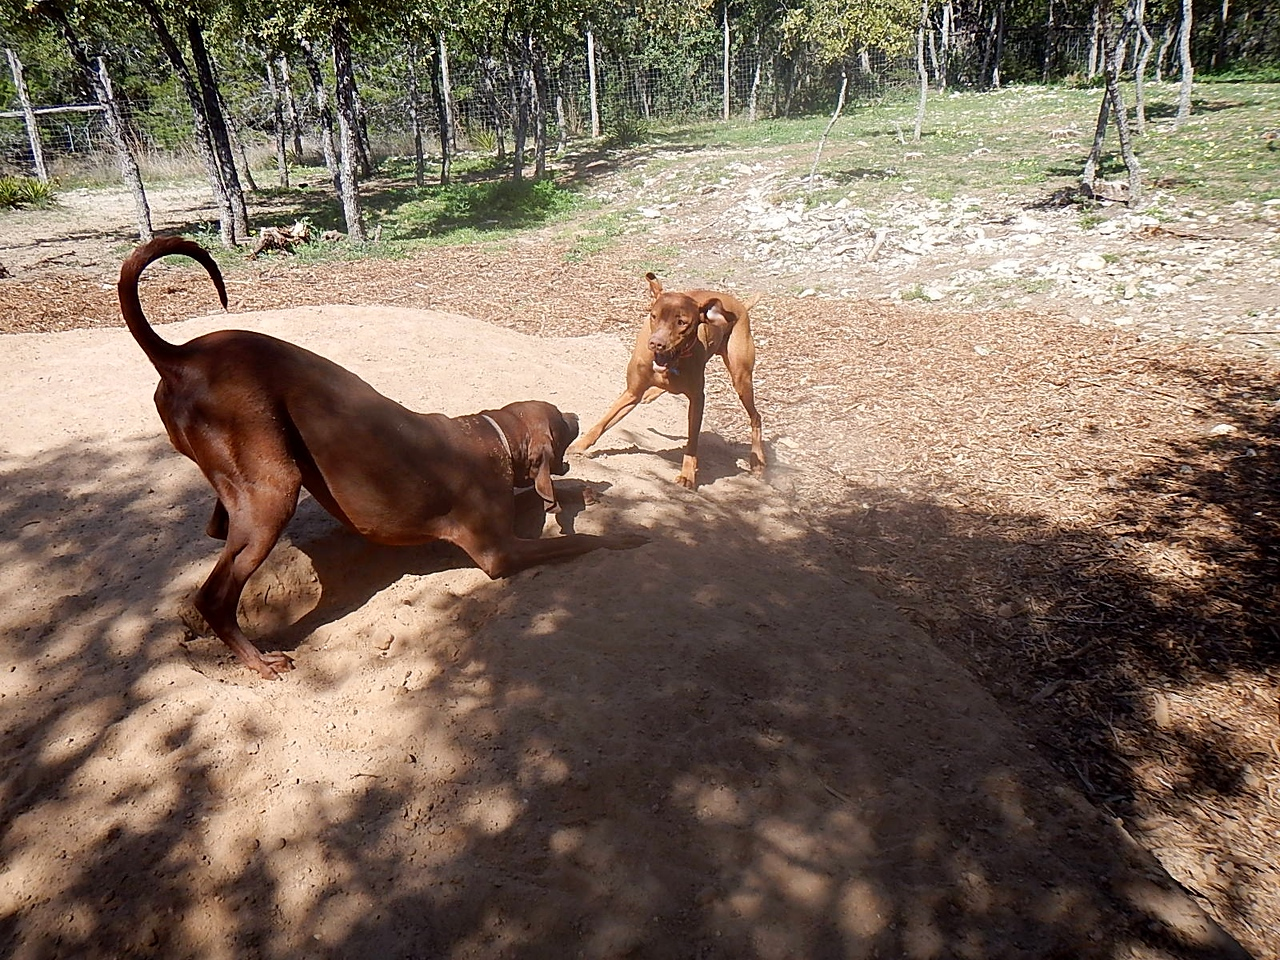 Teak and Ellee Mae playing in the sand